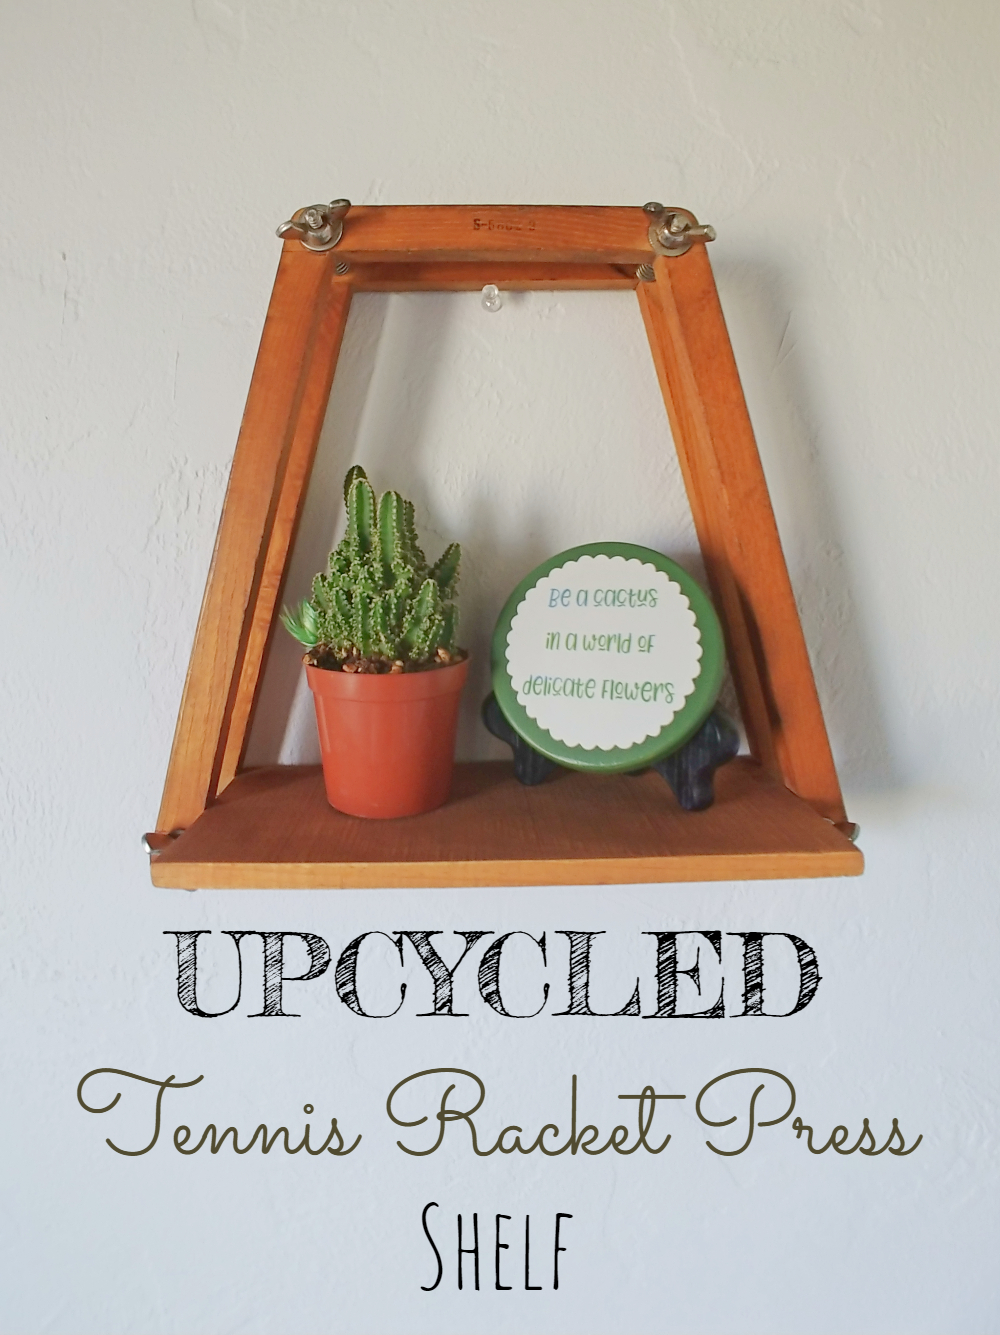 Make a rustic shelf from an old tennis racket press